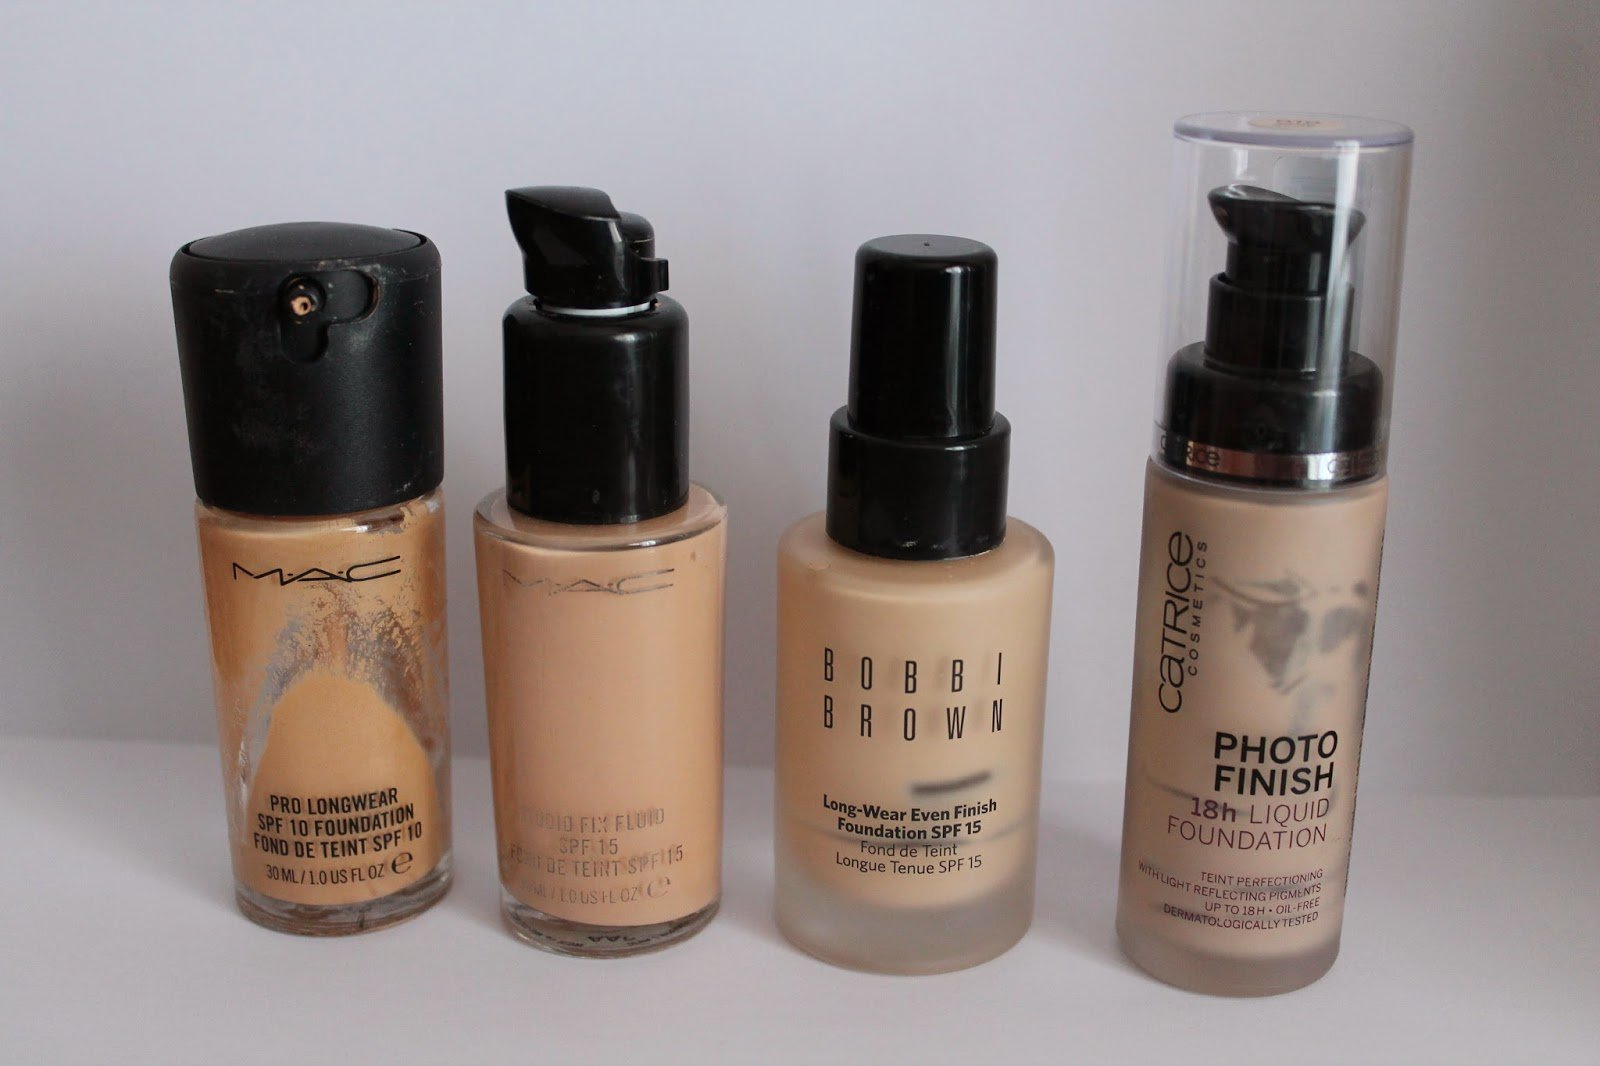 Maquillaje Bobbi Brown 1